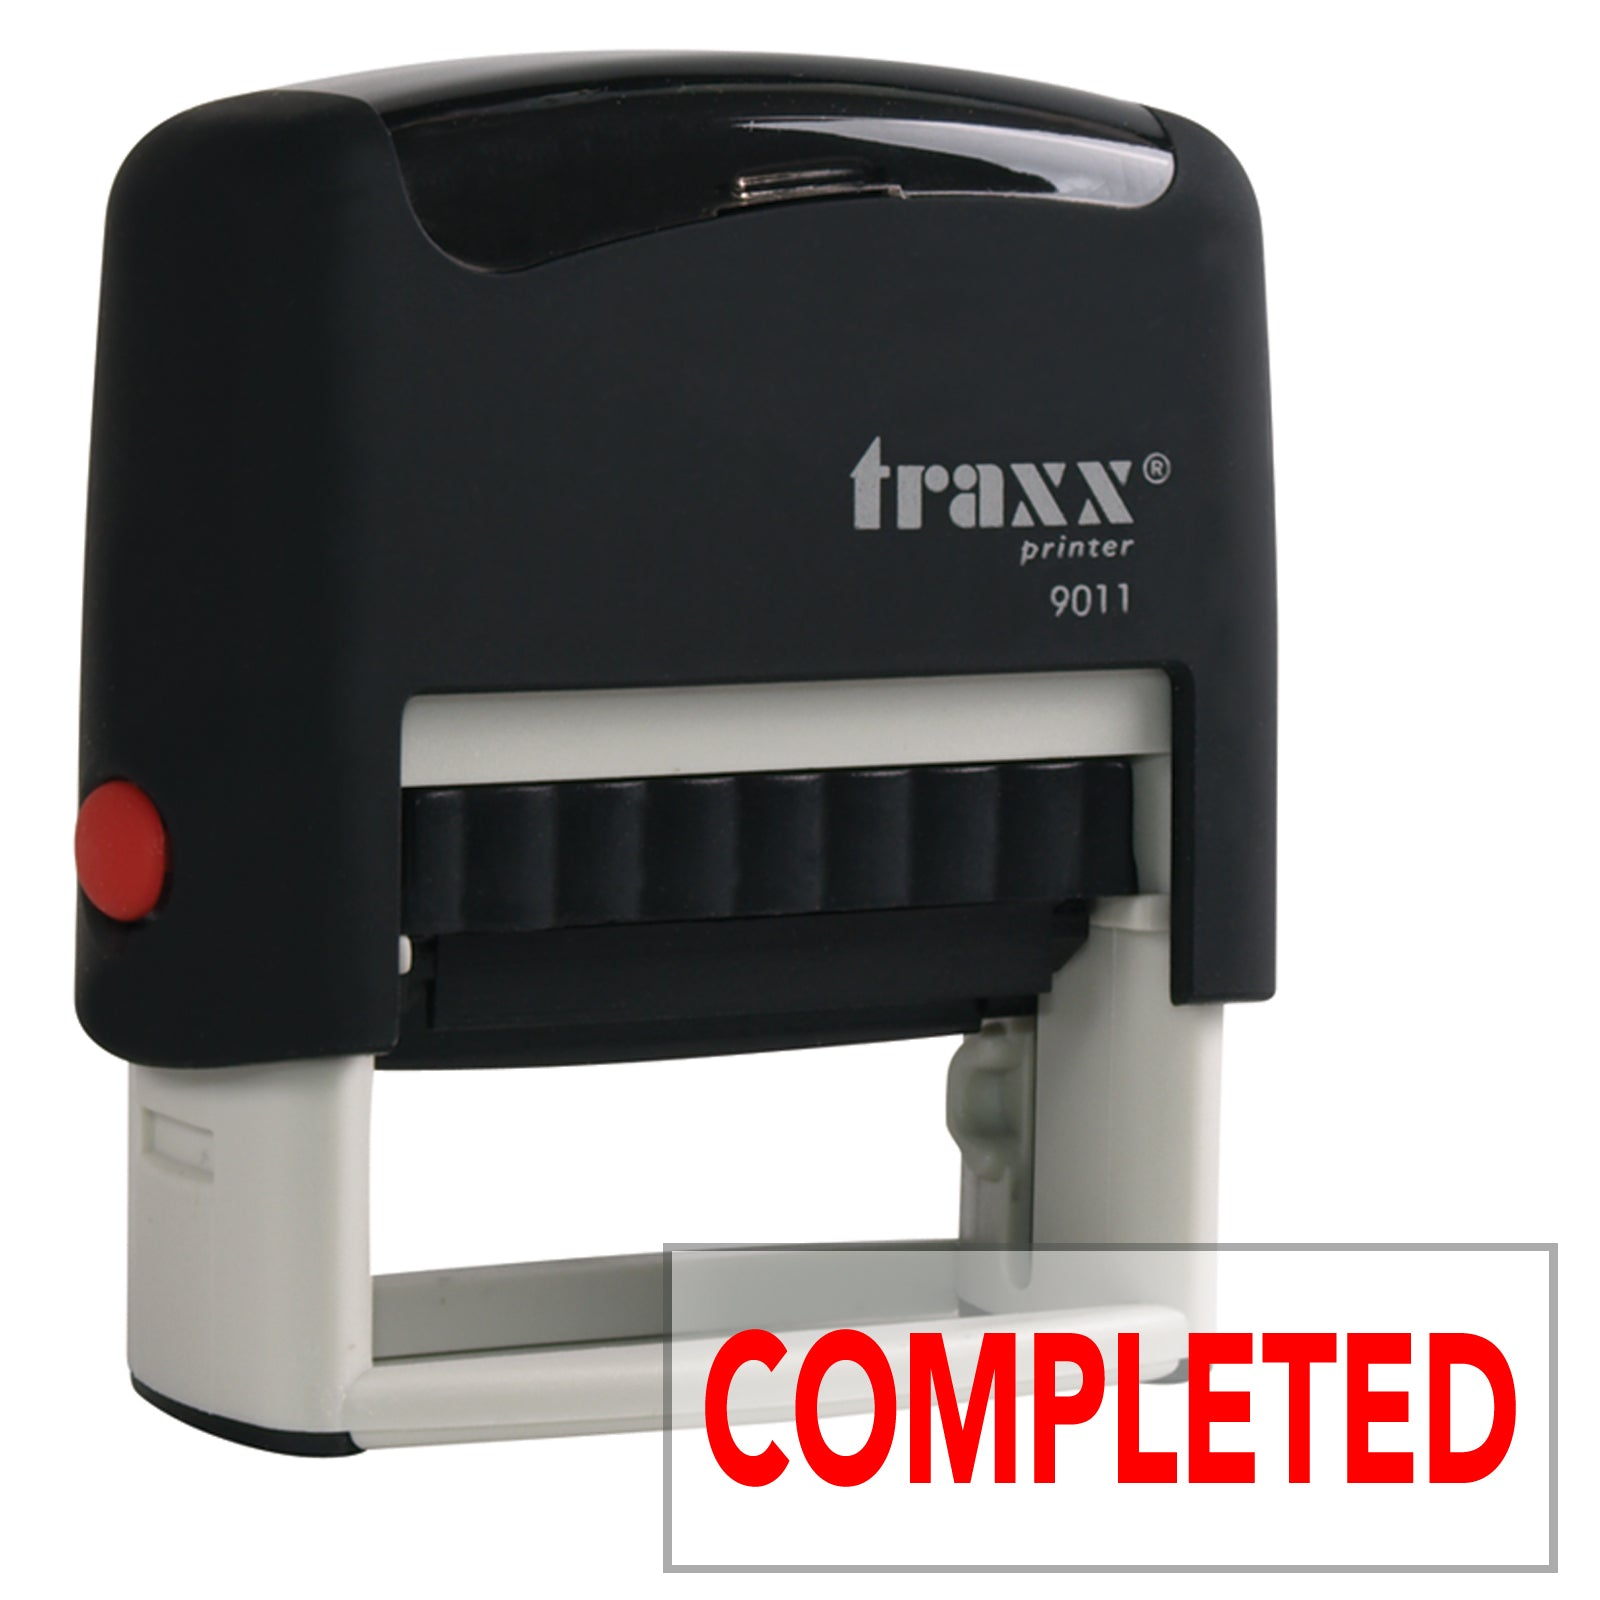 Traxx 9011 38 x 14mm Word Stamp - COMPLETED